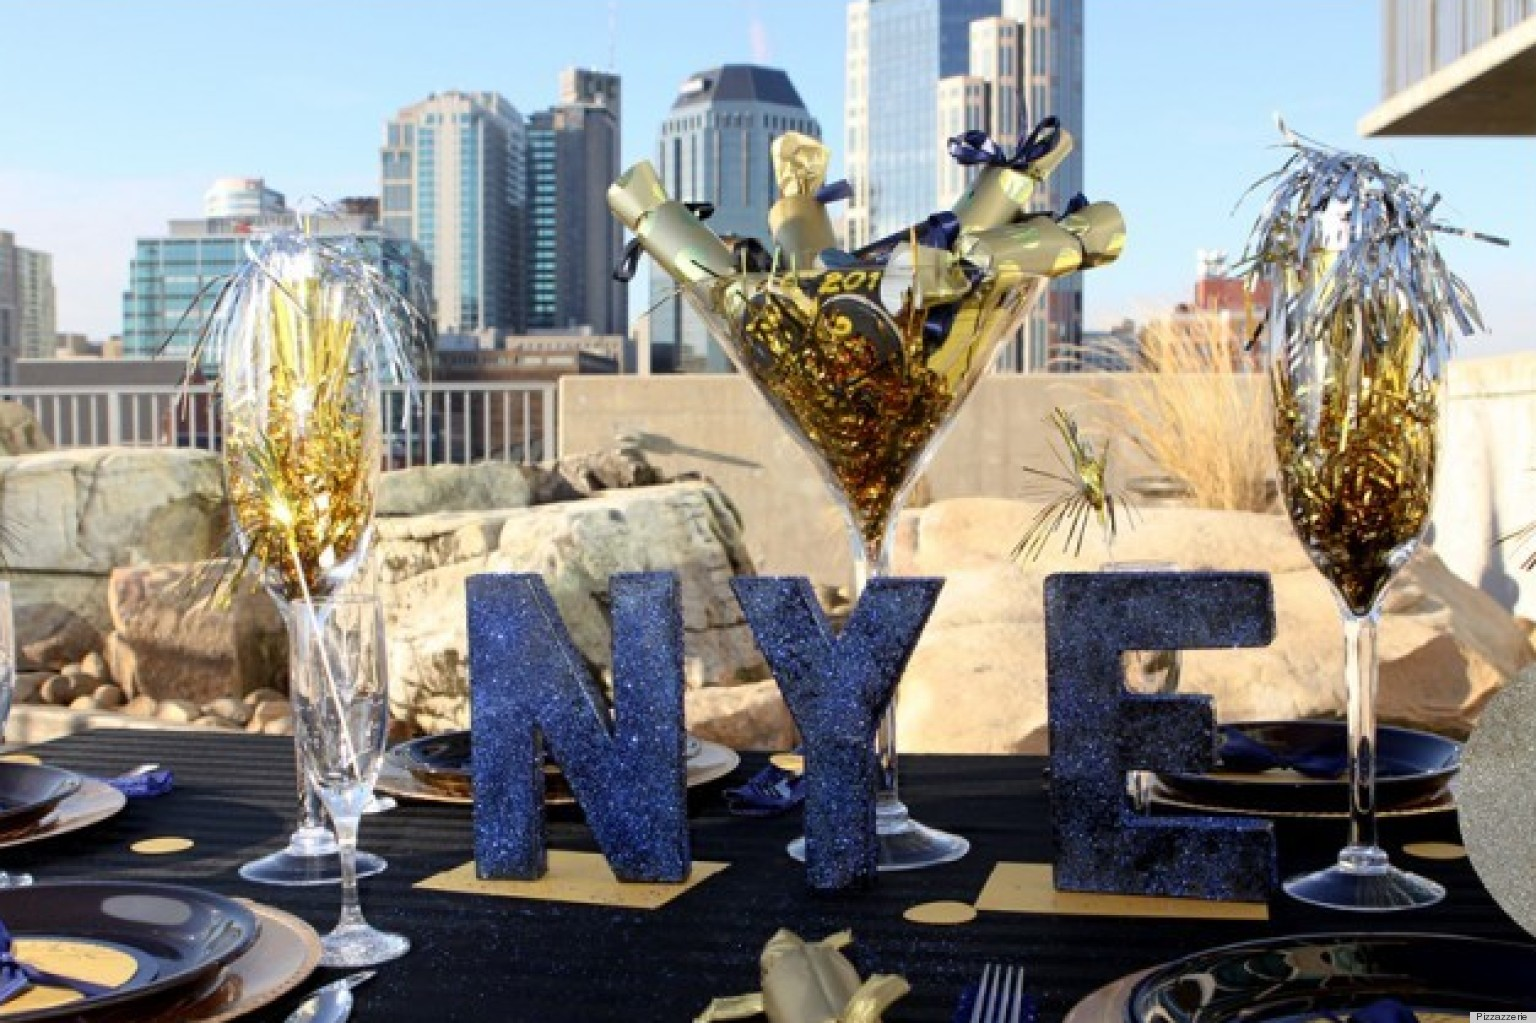 & New Yearu0027s Eve Decorations That Will Make Your Party Sparkle | HuffPost